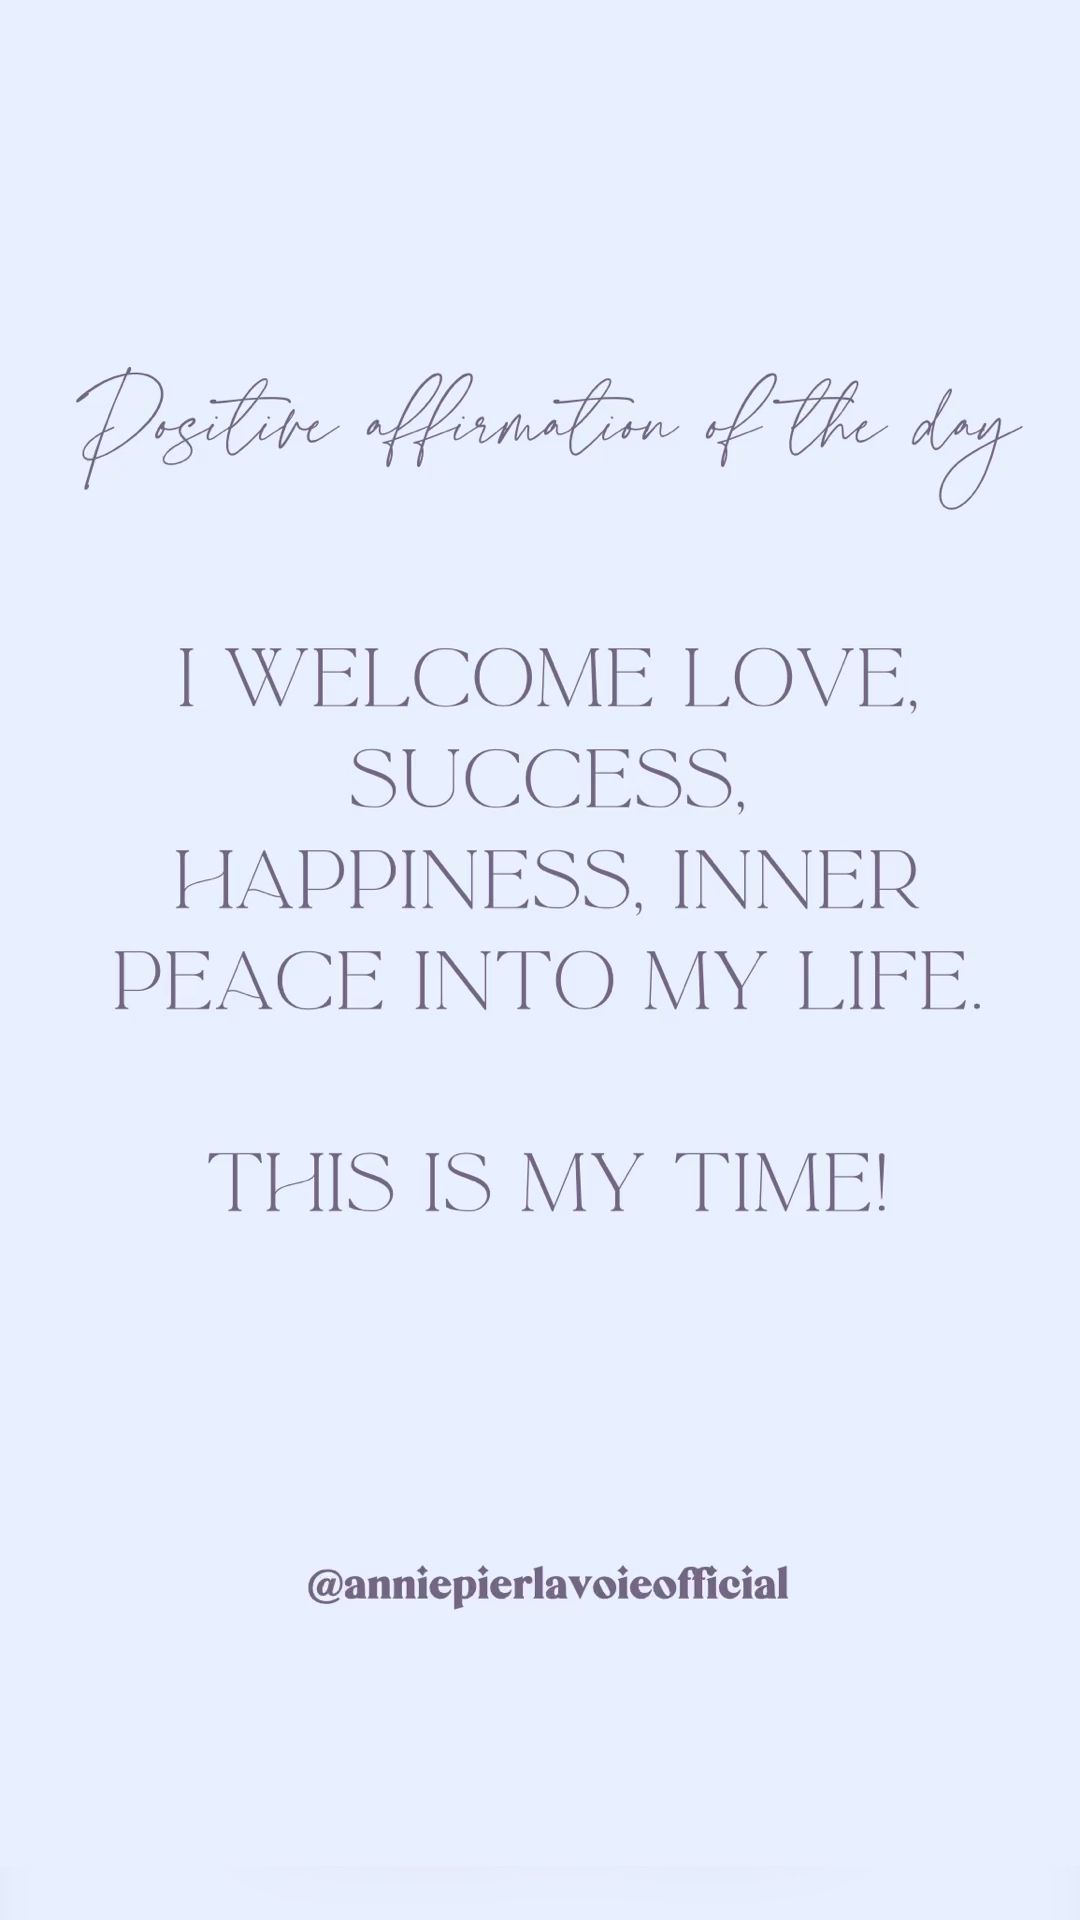 Positive affirmation of the day